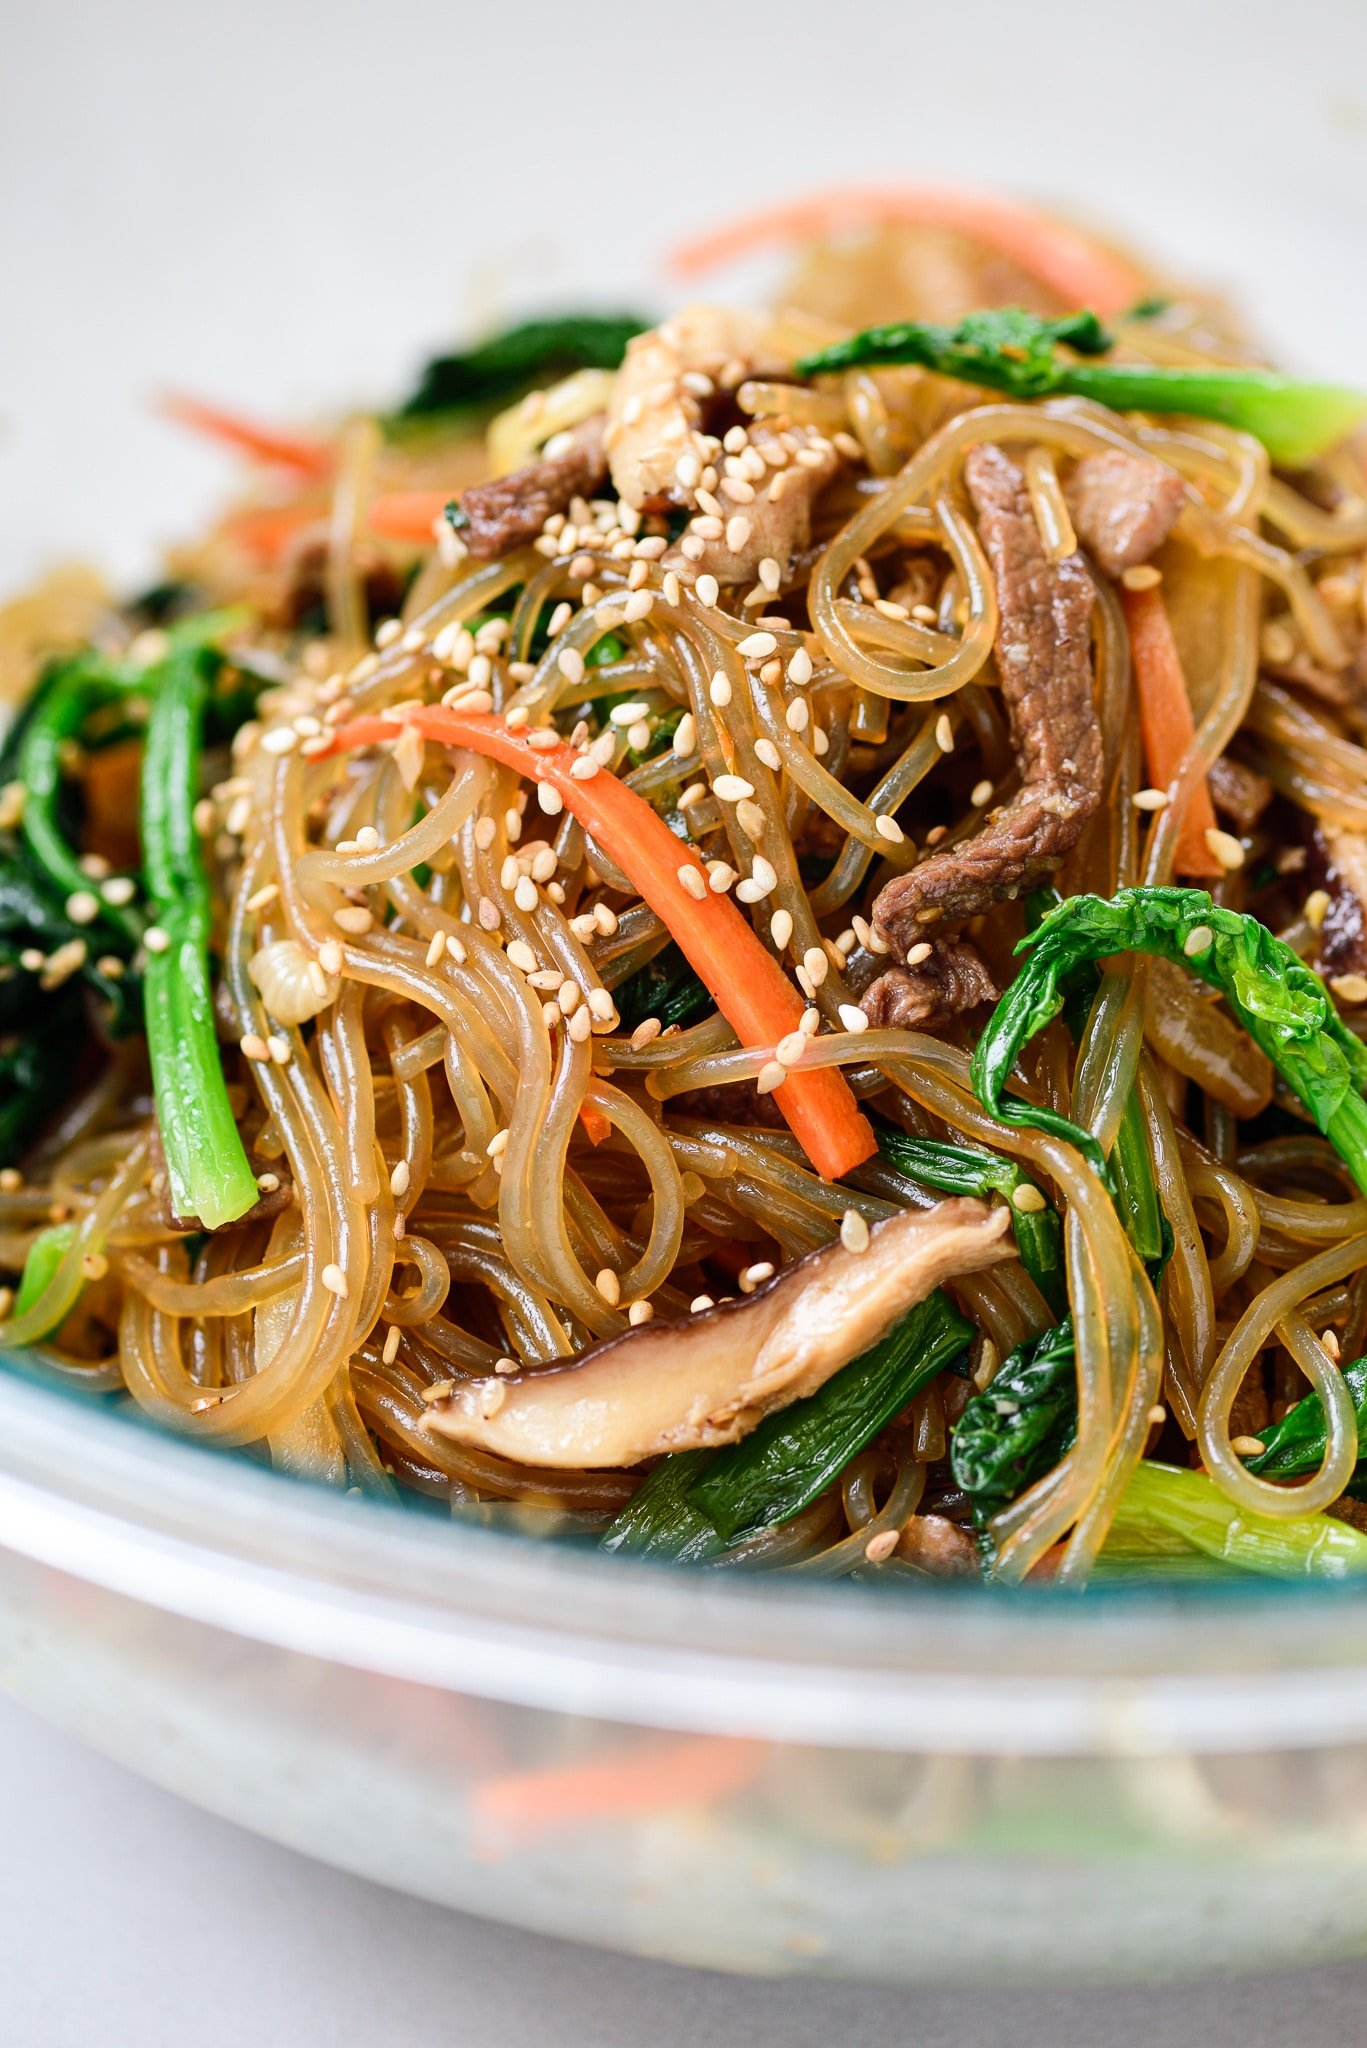 Stir-fried starch noodles with beef, spinach, carrot and mushroom strips in a big Pyrex bowl